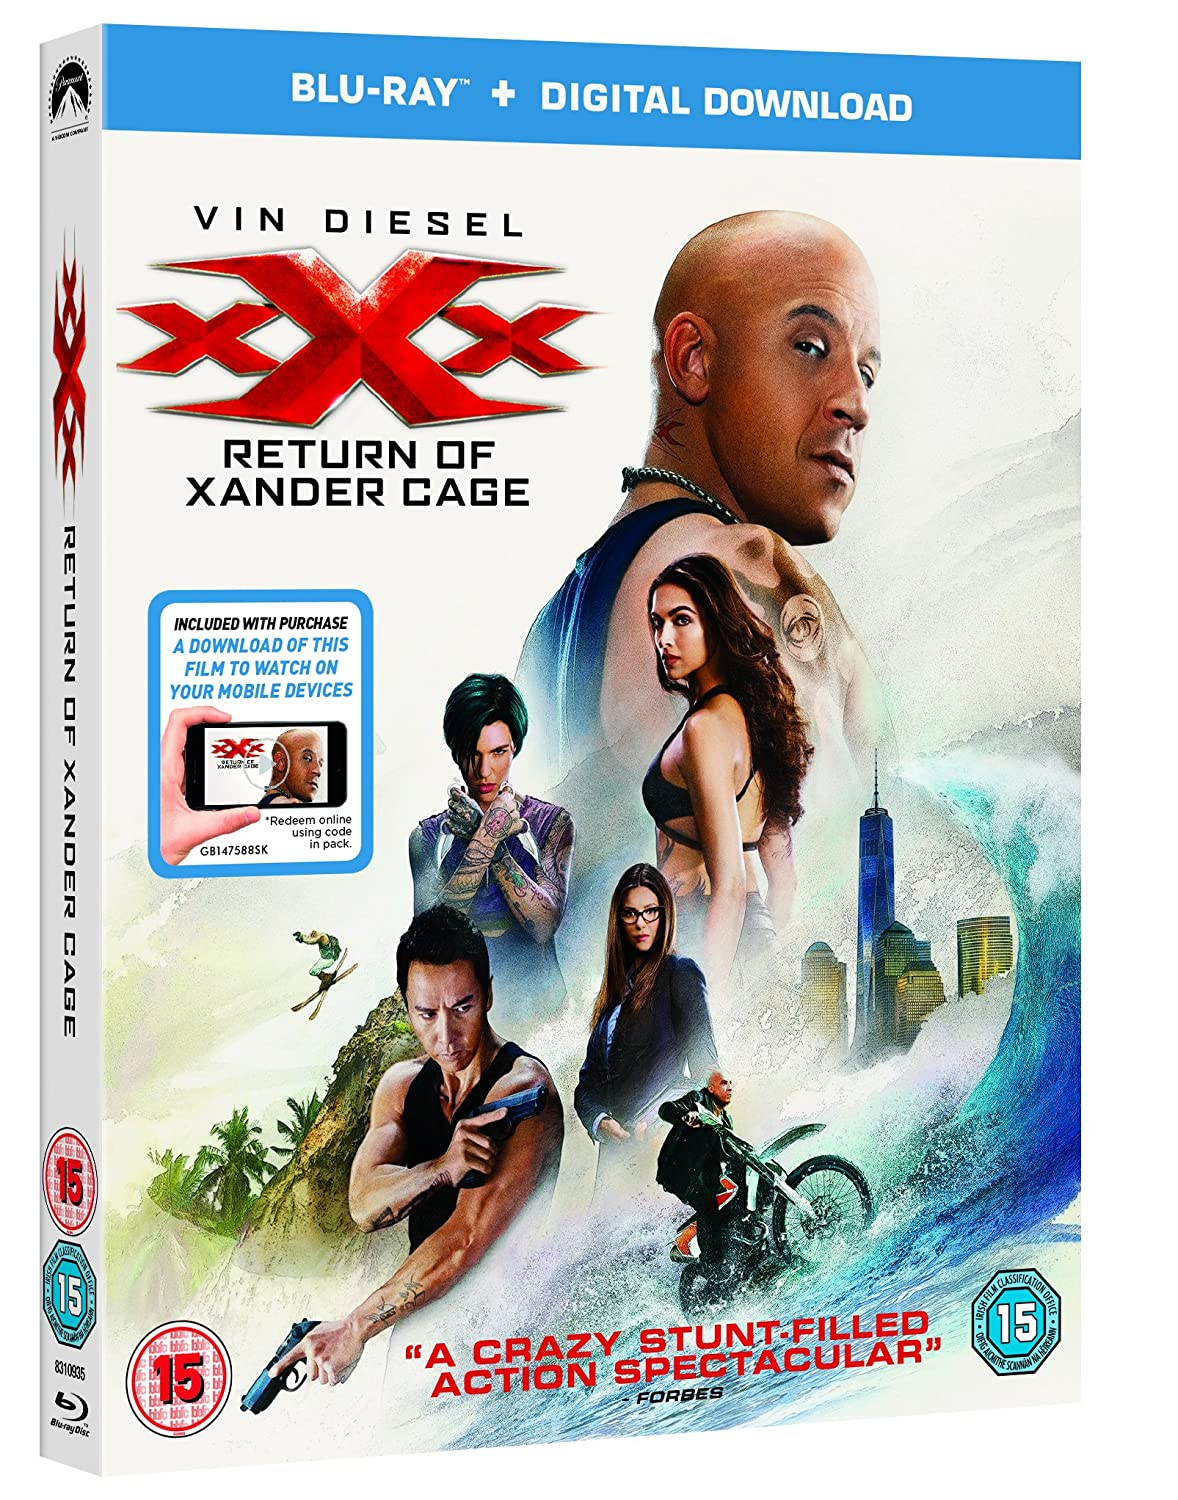 Amazon com: XXX: The Return Of Xander Cage (Blu-ray +